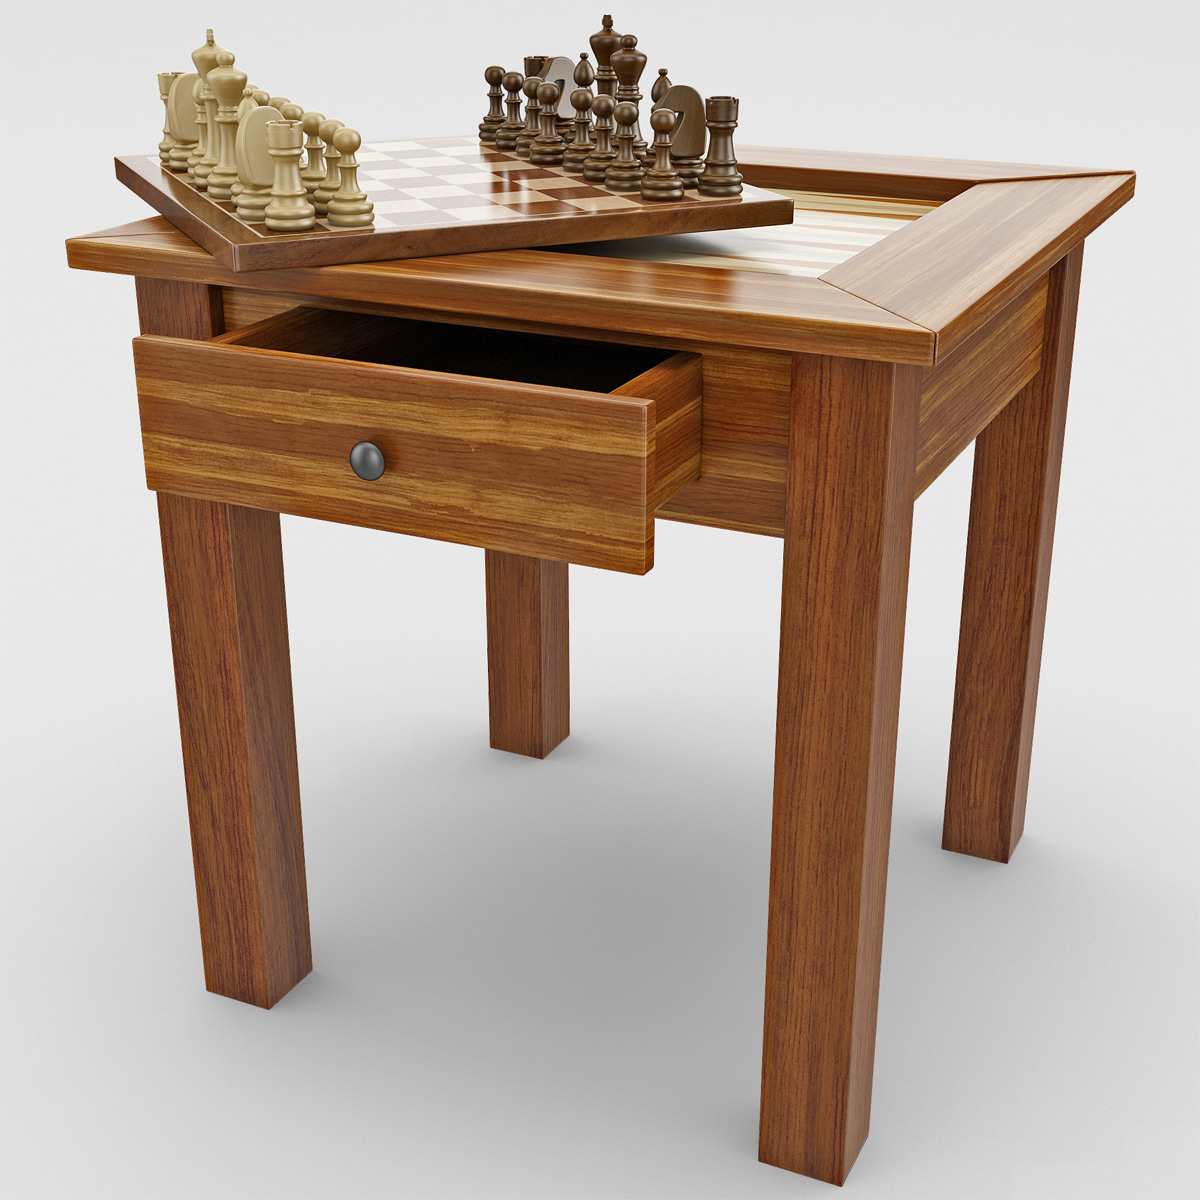 239379_Chess_Backgammon_Table_001.jpg